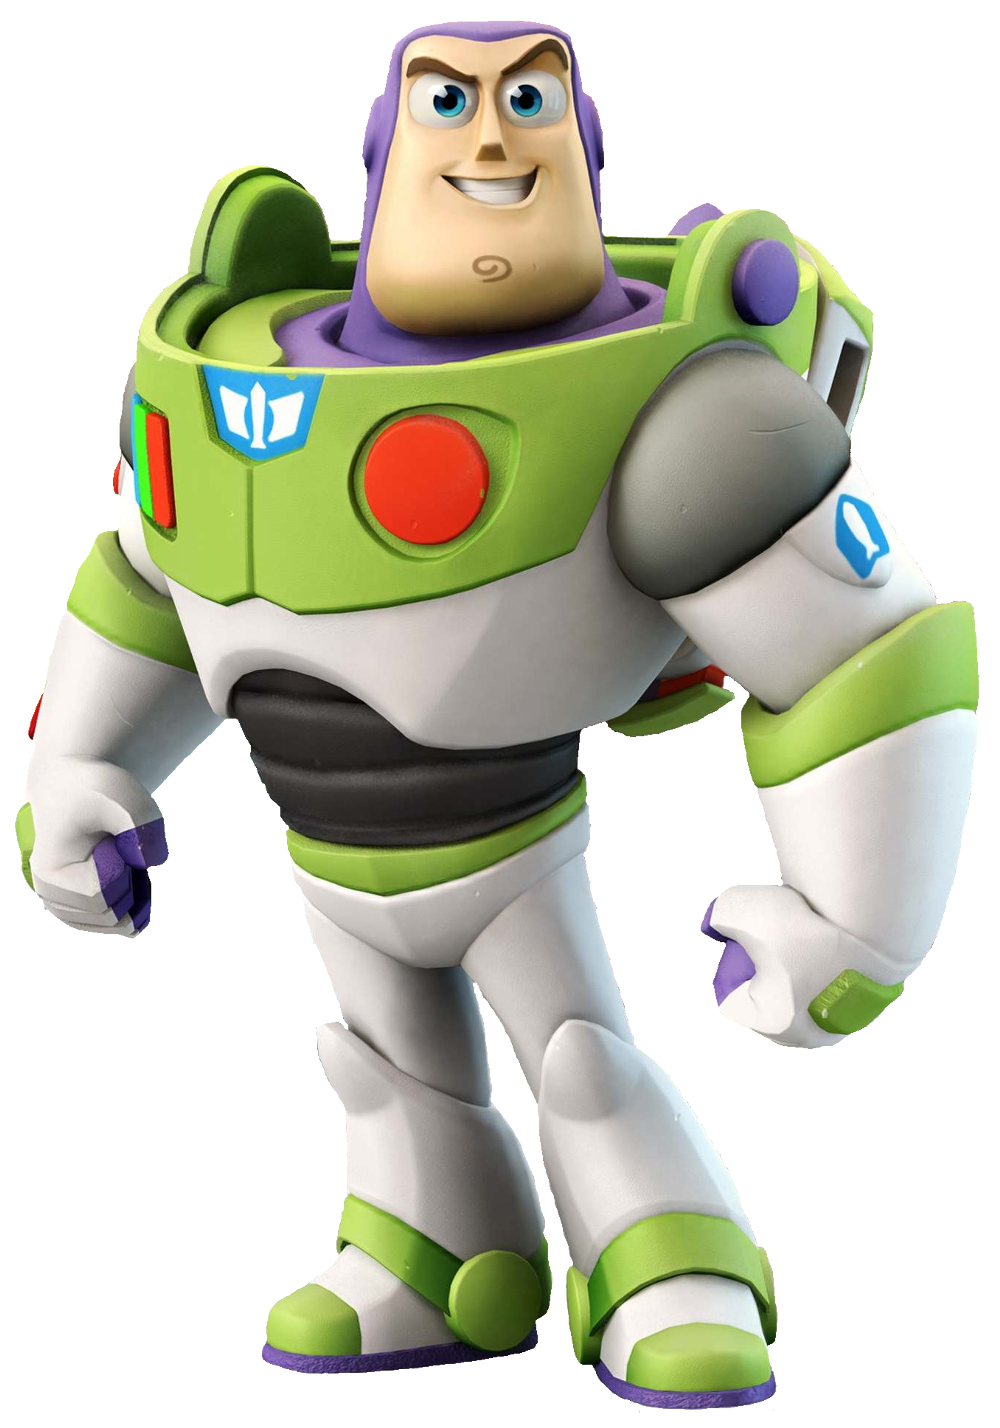 Buzz light year png. Image lightyear di render